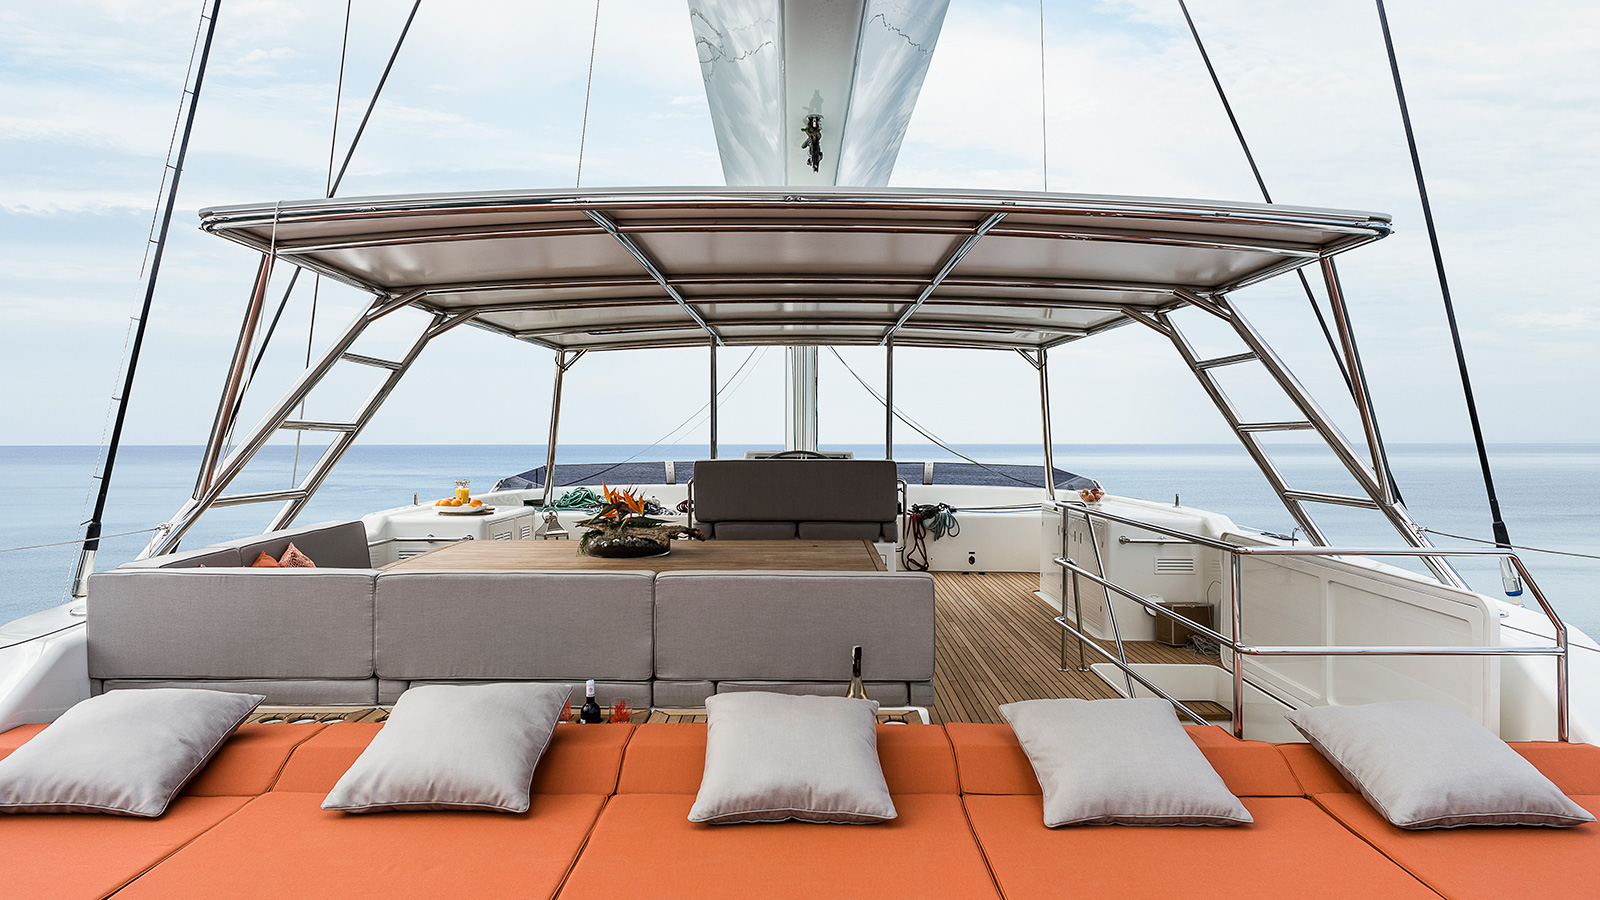 the-sundeck-of-the-sunreef-catamaran-sailing-superyacht-ruwani